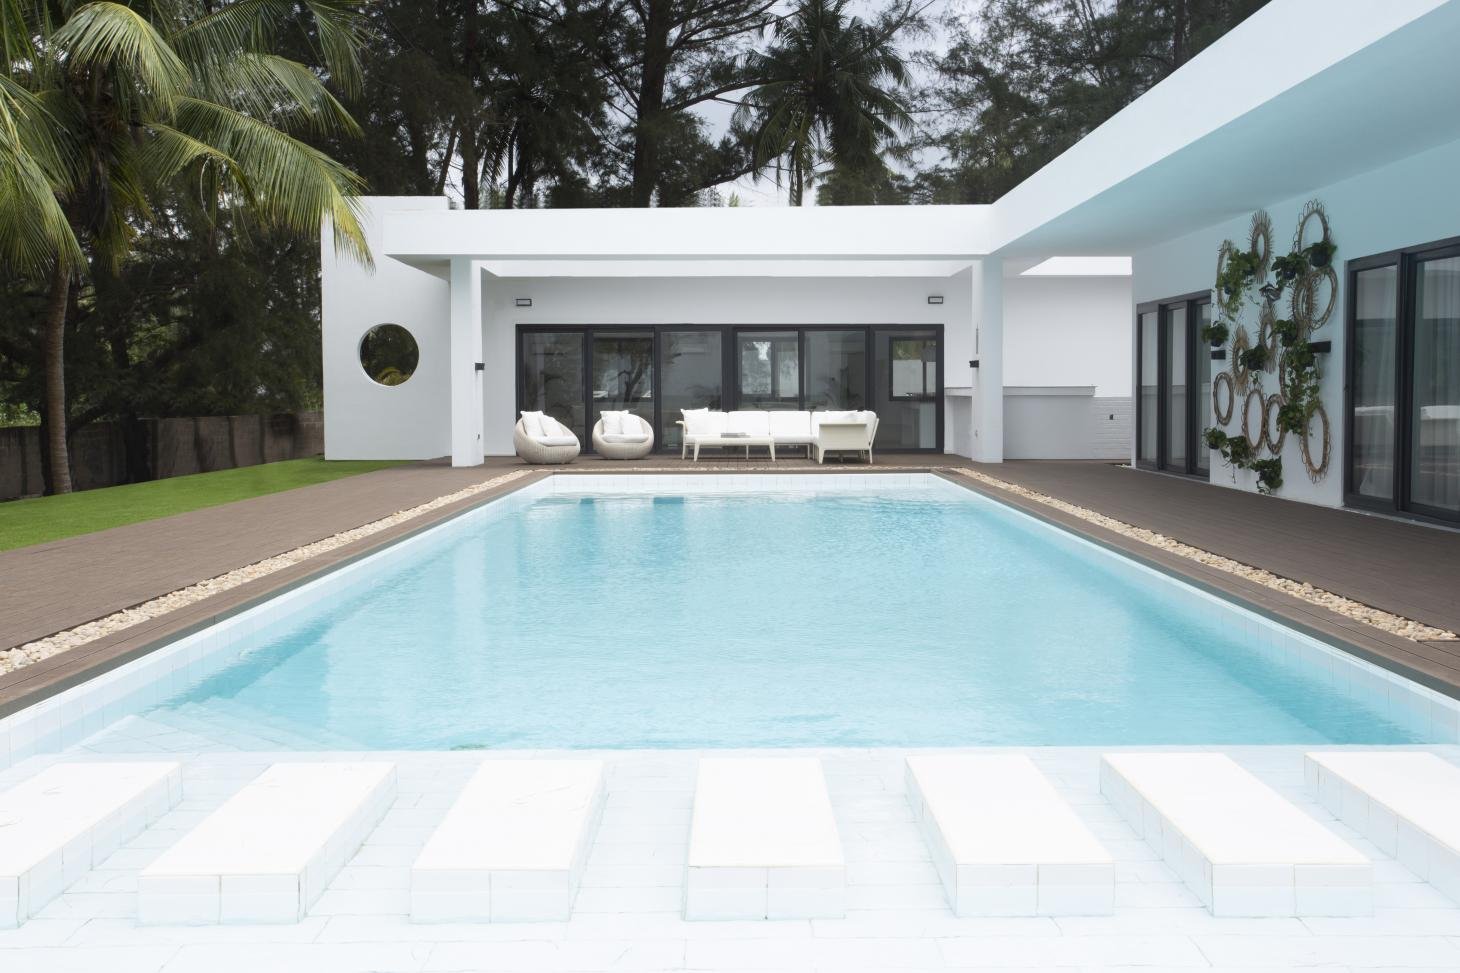 looking at low modernist Nigerian villa over swimming pool